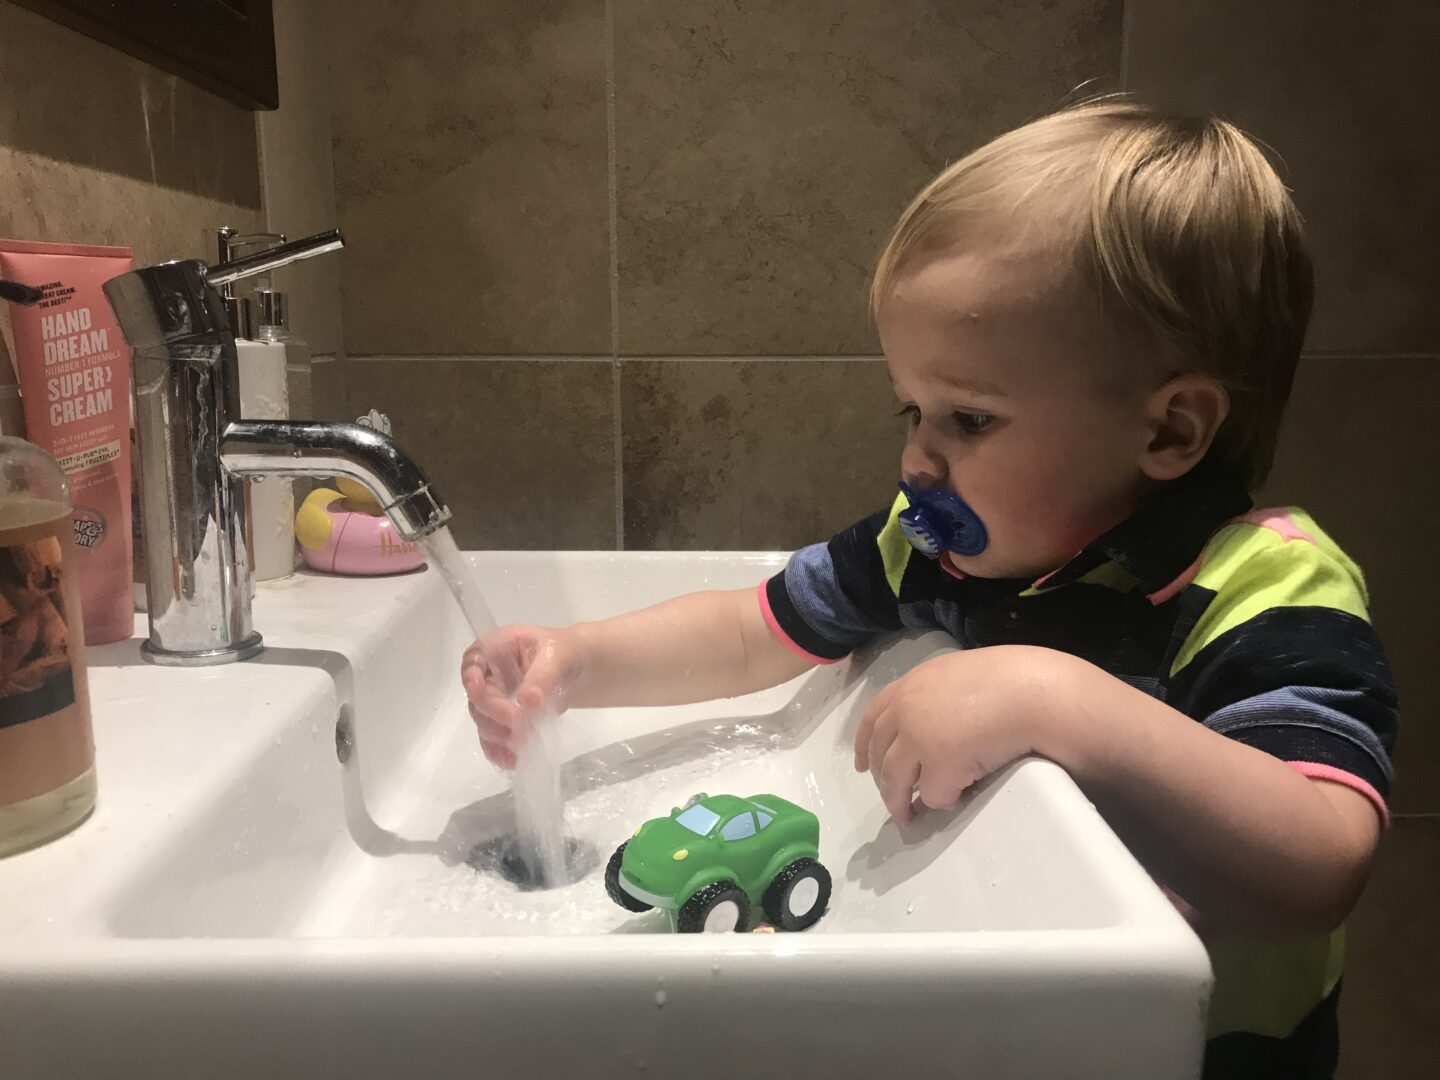 Dexter playing with the tap over a sink in the bathroom using a blue dummy